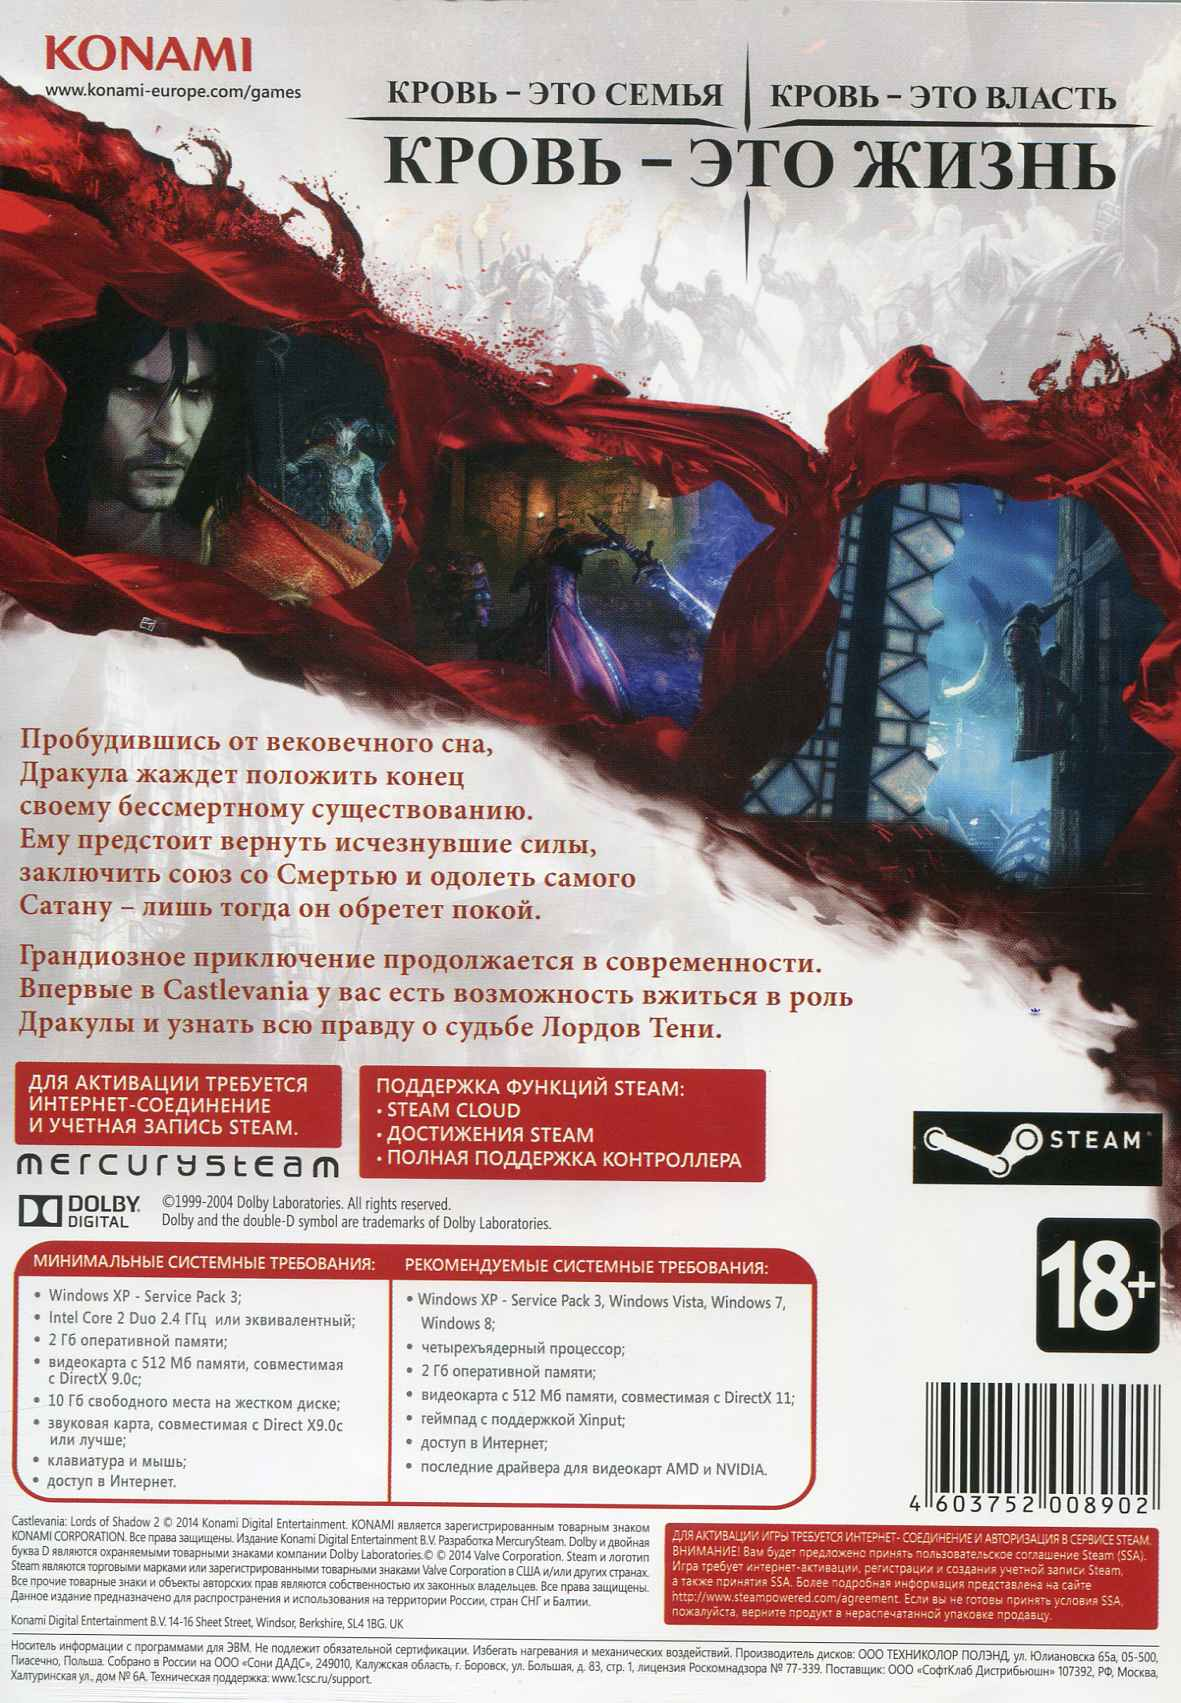 Castlevania: Lords of Shadow 2 (Ключ активации в Steam)